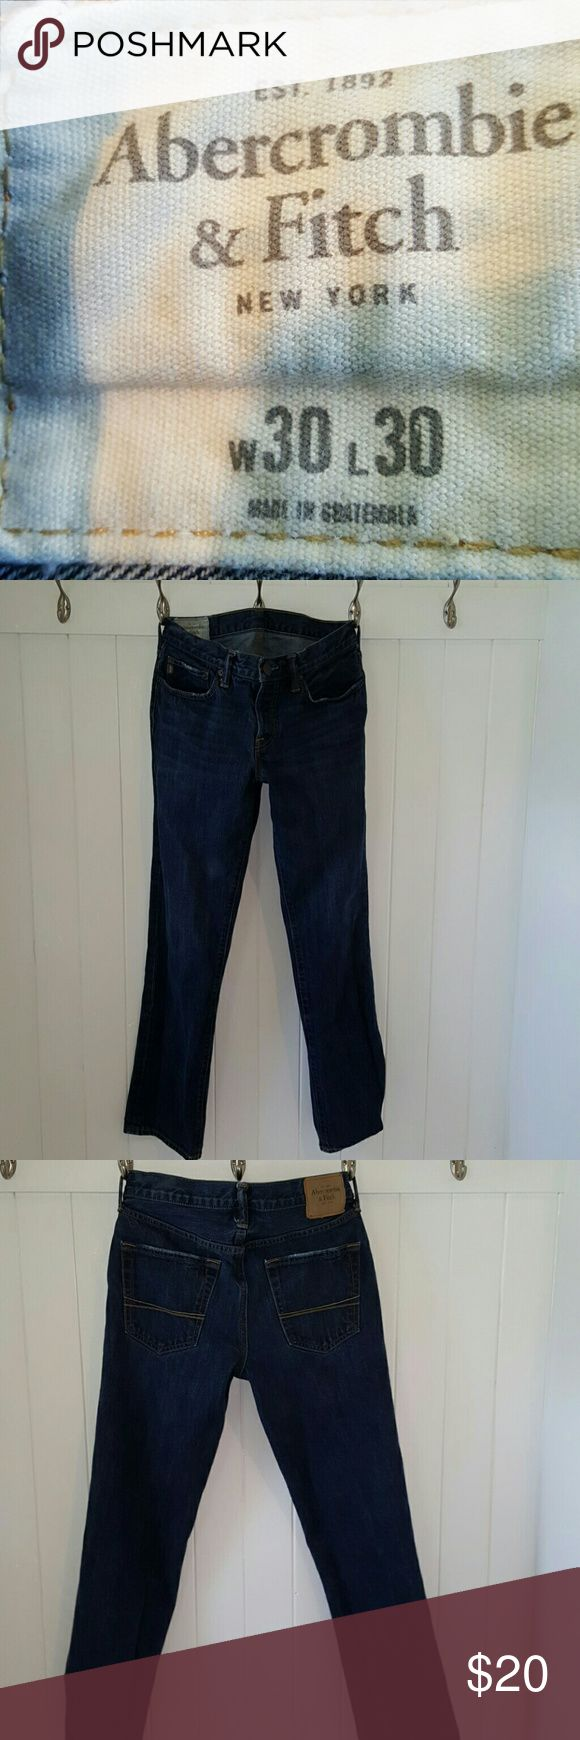 Abercrombie  mens jeans 30 / 30  SLIM STRAIGHT Abercrombie  mens jeans 30 / 30  SLIM STRAIGHT    nice dark blue   great condition  lite and dark tan stitching Abercrombie & Fitch Jeans Slim Straight